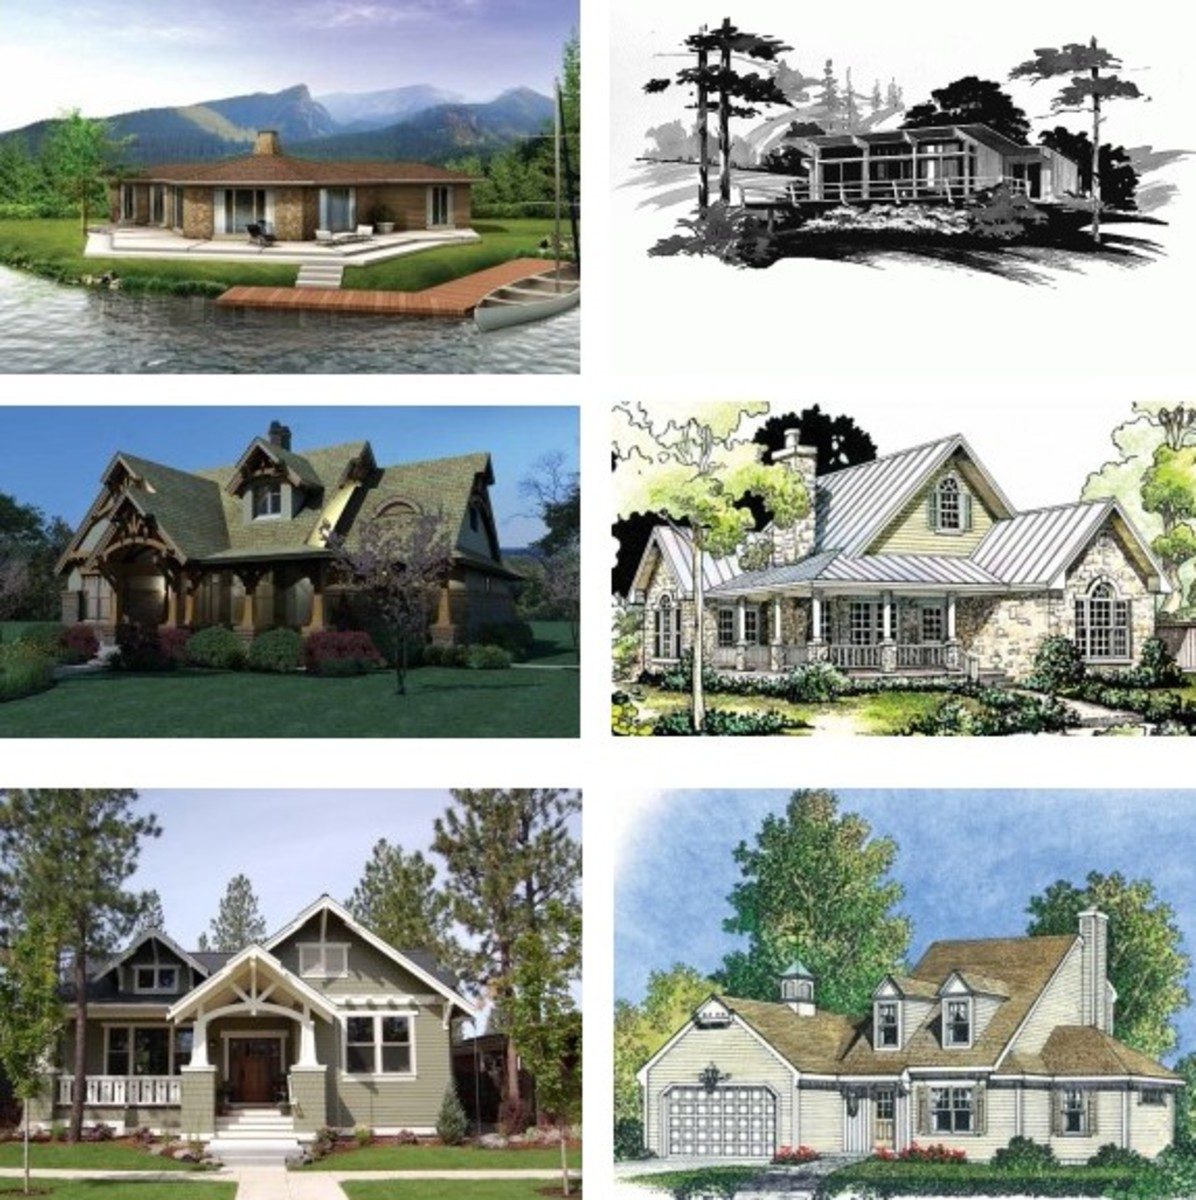 Traditional style home designs you will find online. Notice their modest sizes and beautiful classic features. For prospective homeowners that love elegant traditional style architecture.